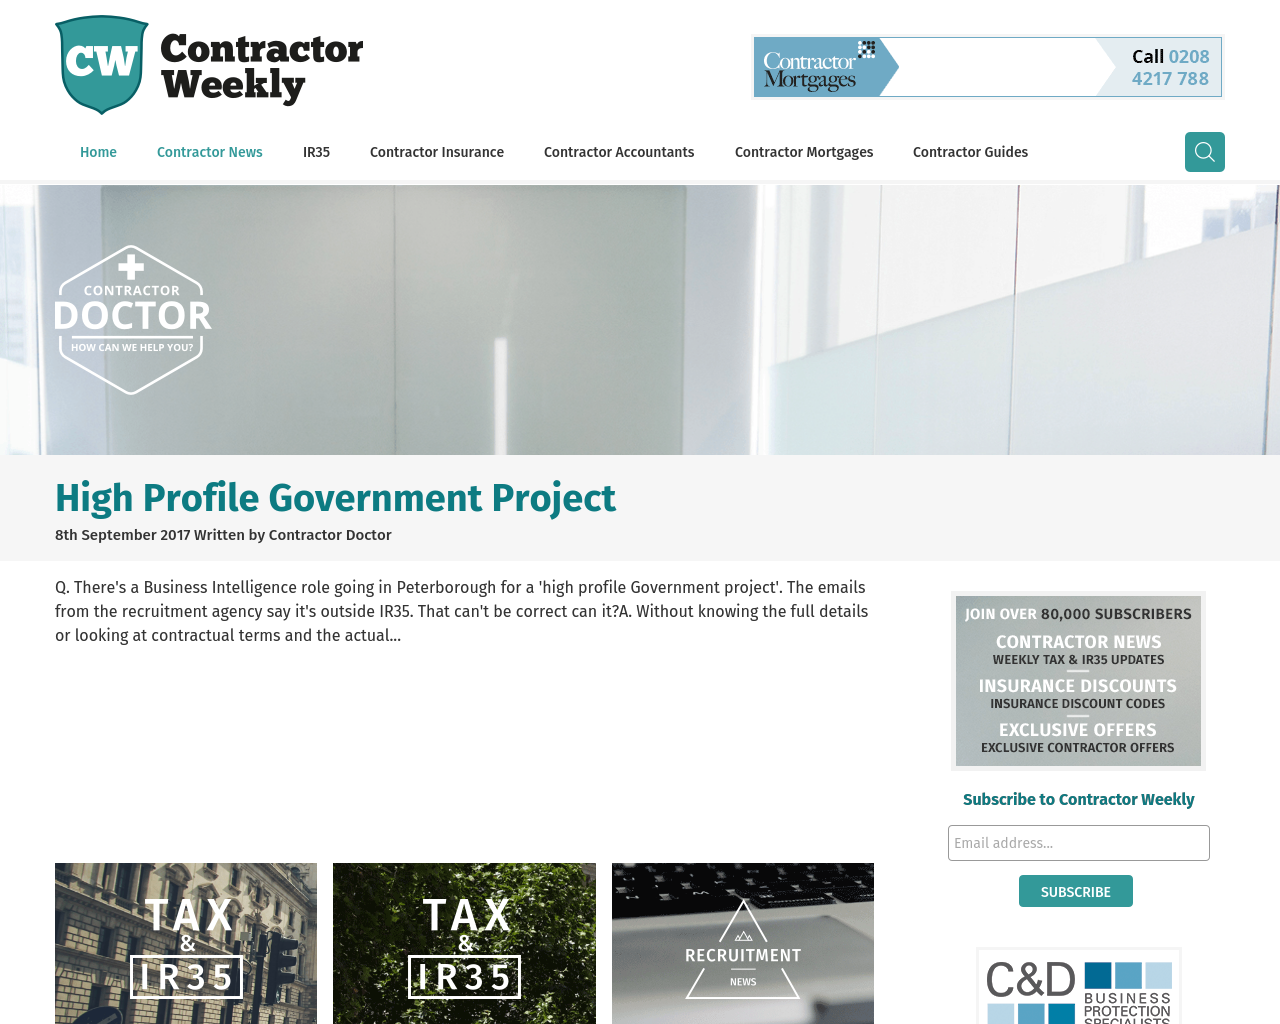 Contractor-Weekly-Advertising-Reviews-Pricing